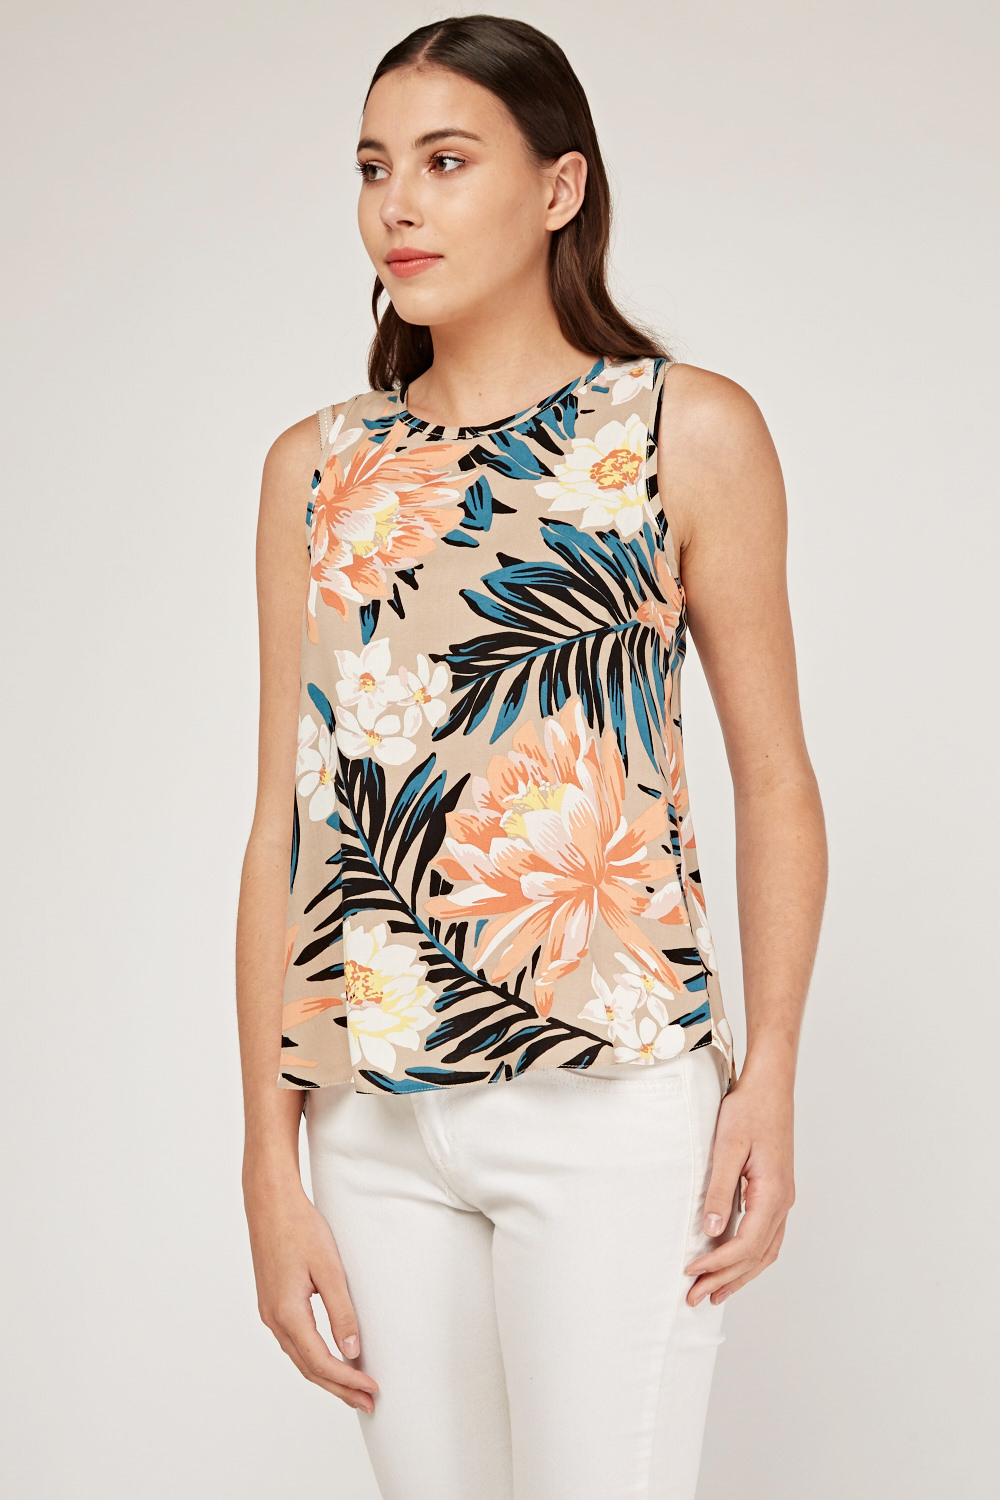 3f25ad403c41eb Tropical Floral Print Shell Top - Just £5